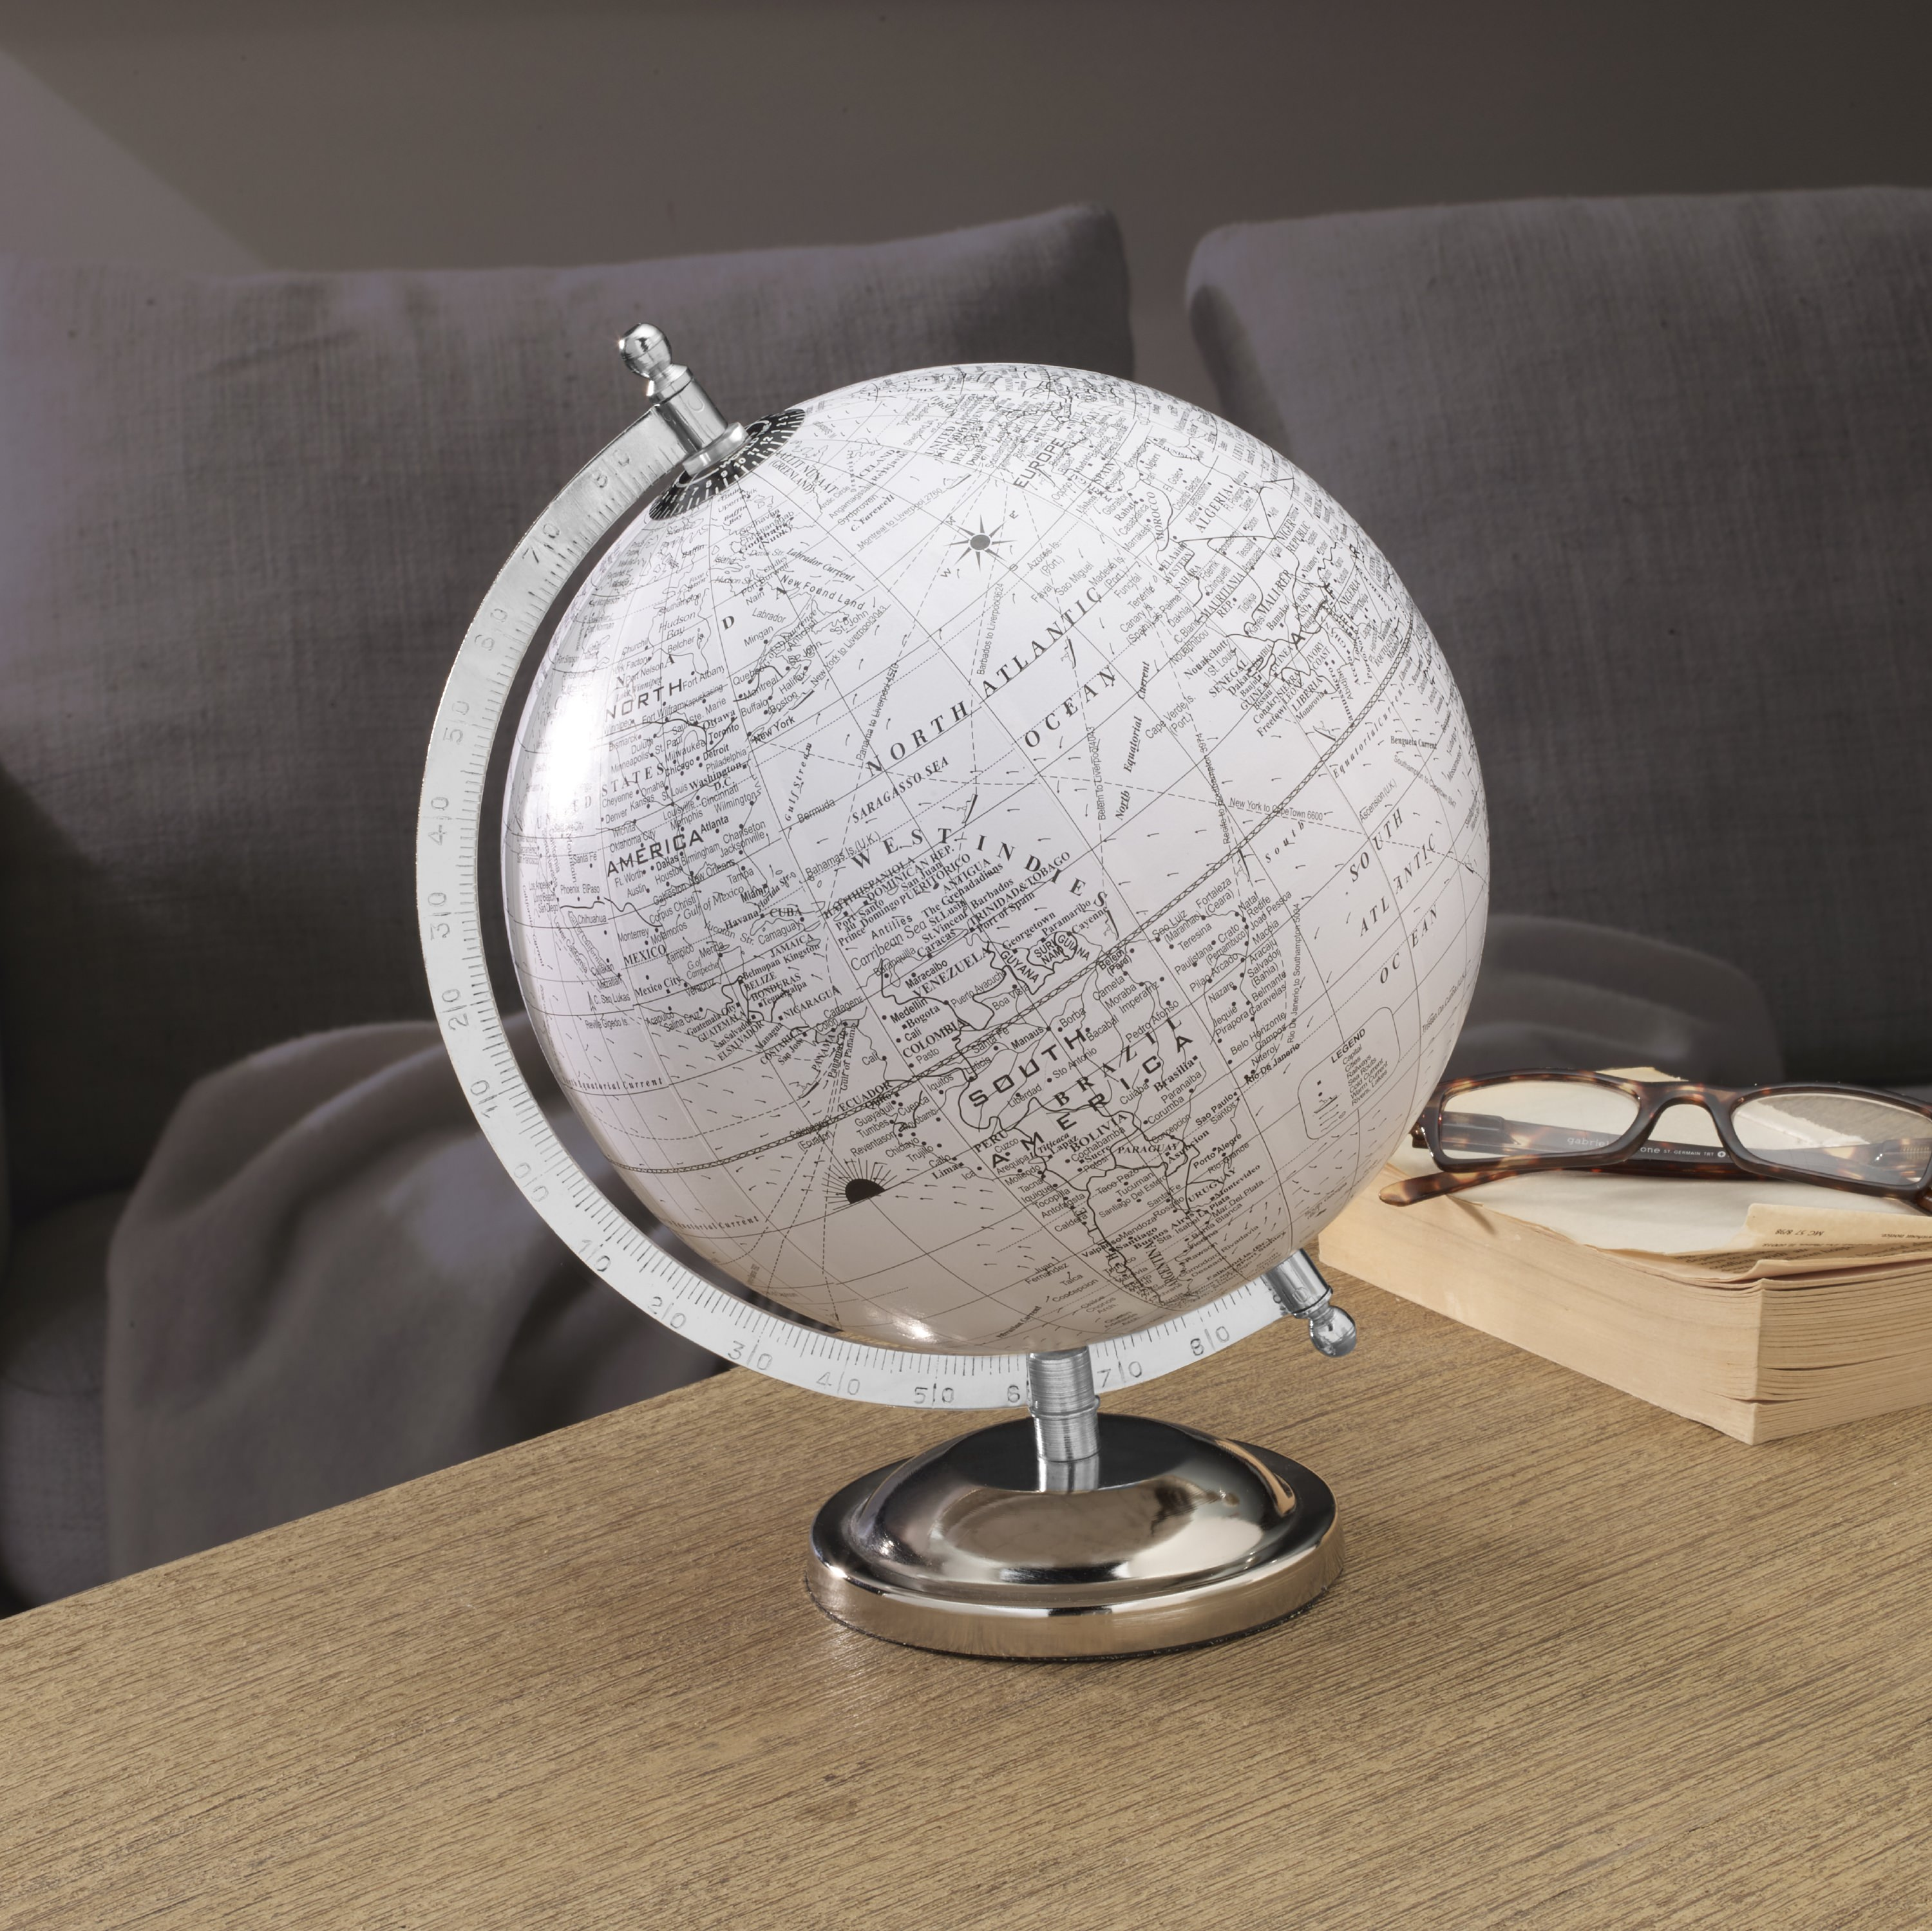 Elements 8 Inch X 11 Inch Tabletop Globe With Metal Stand, White